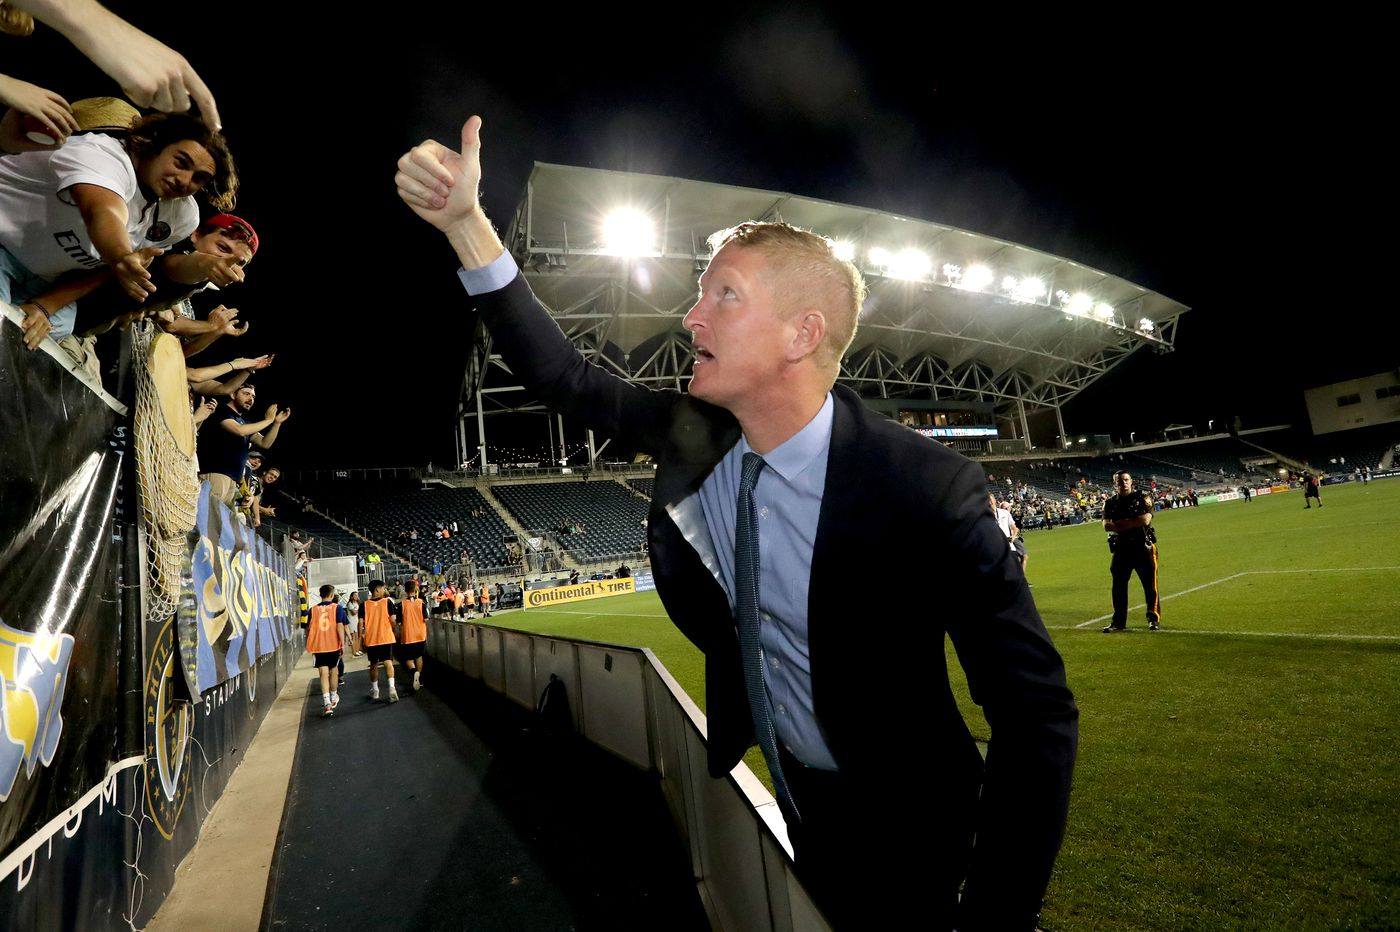 Borek Dockal makes history, Jim Curtin coaches against his mentor, and other Union observations